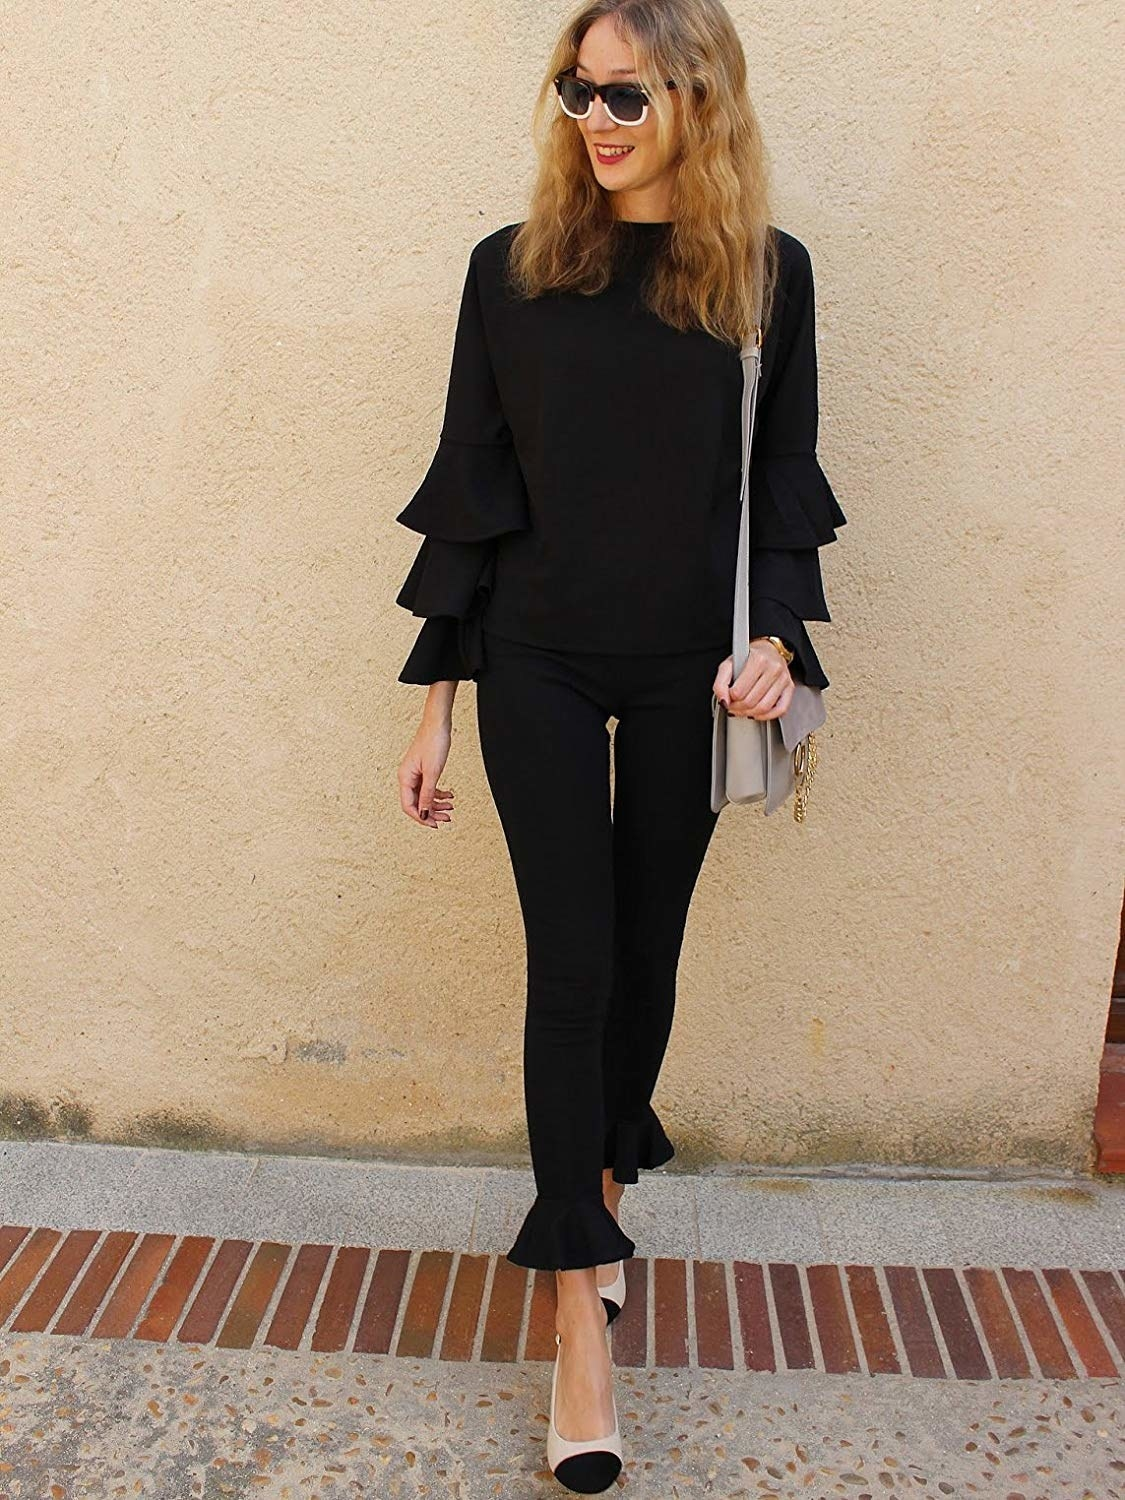 A model in the black pants with fluted ruffle around the ankle